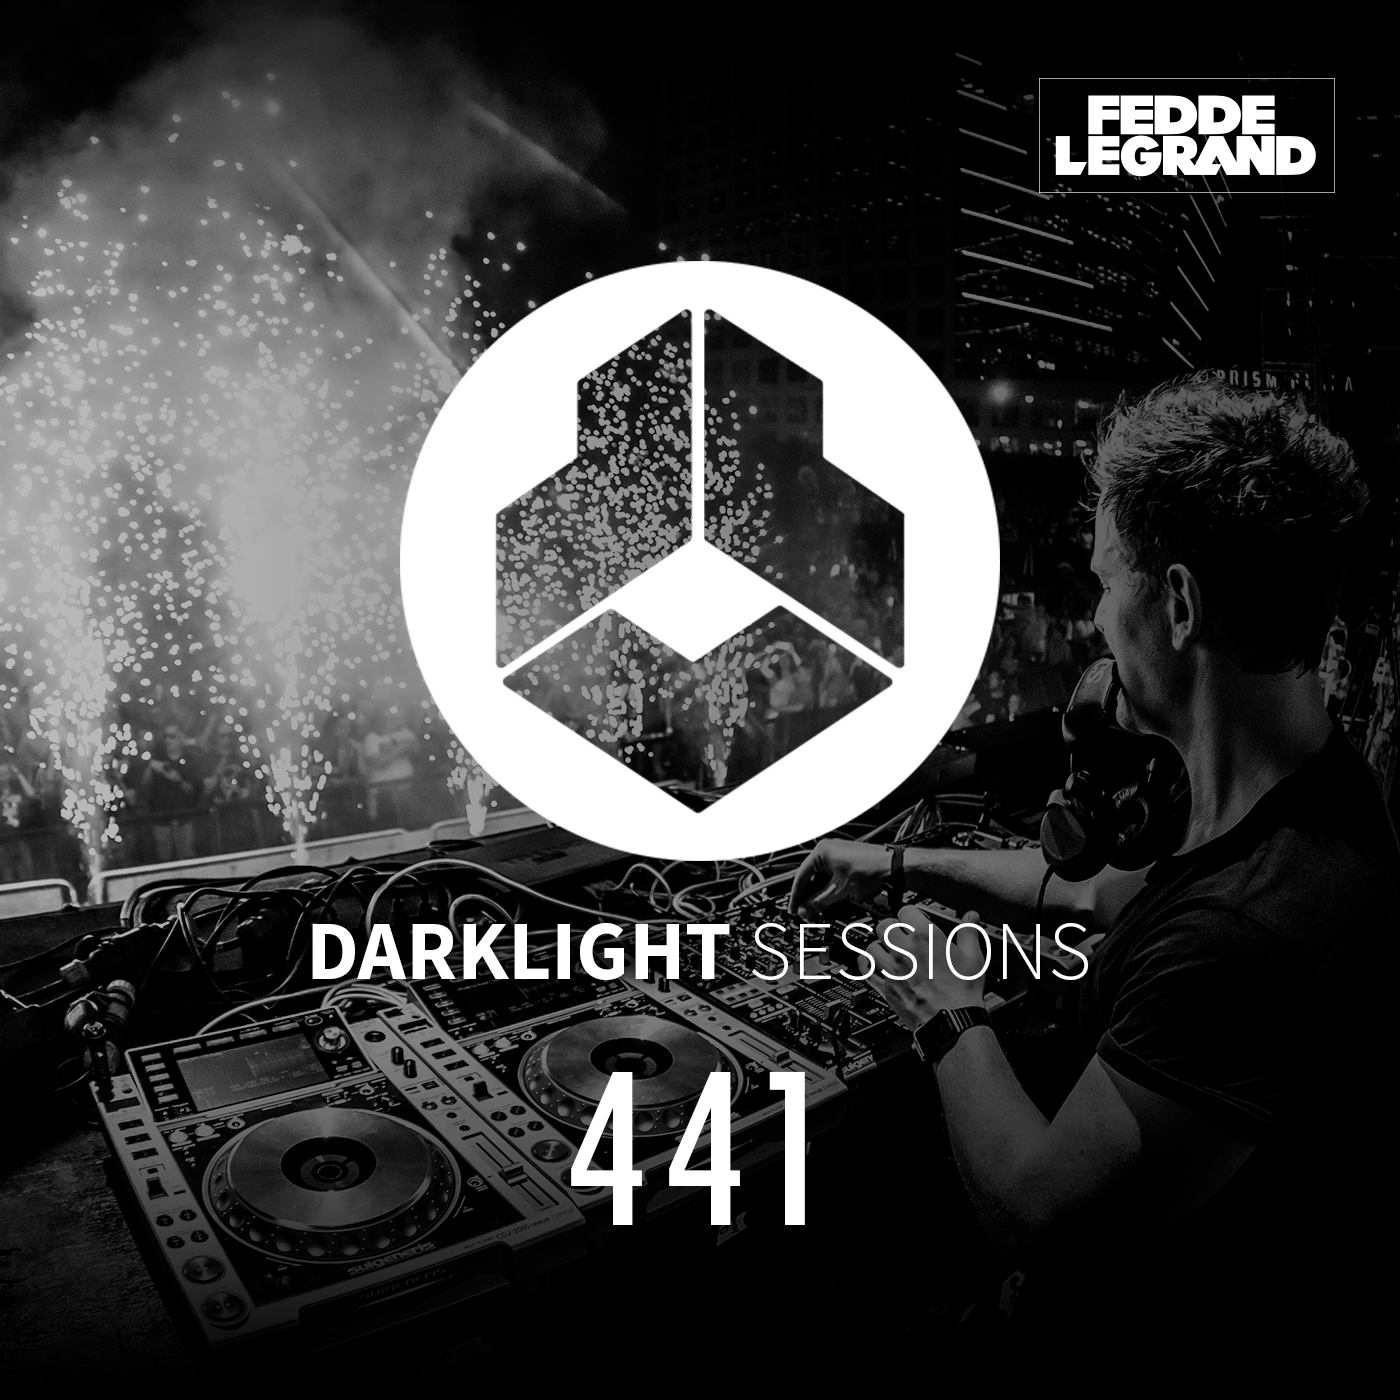 Darklight Sessions 441